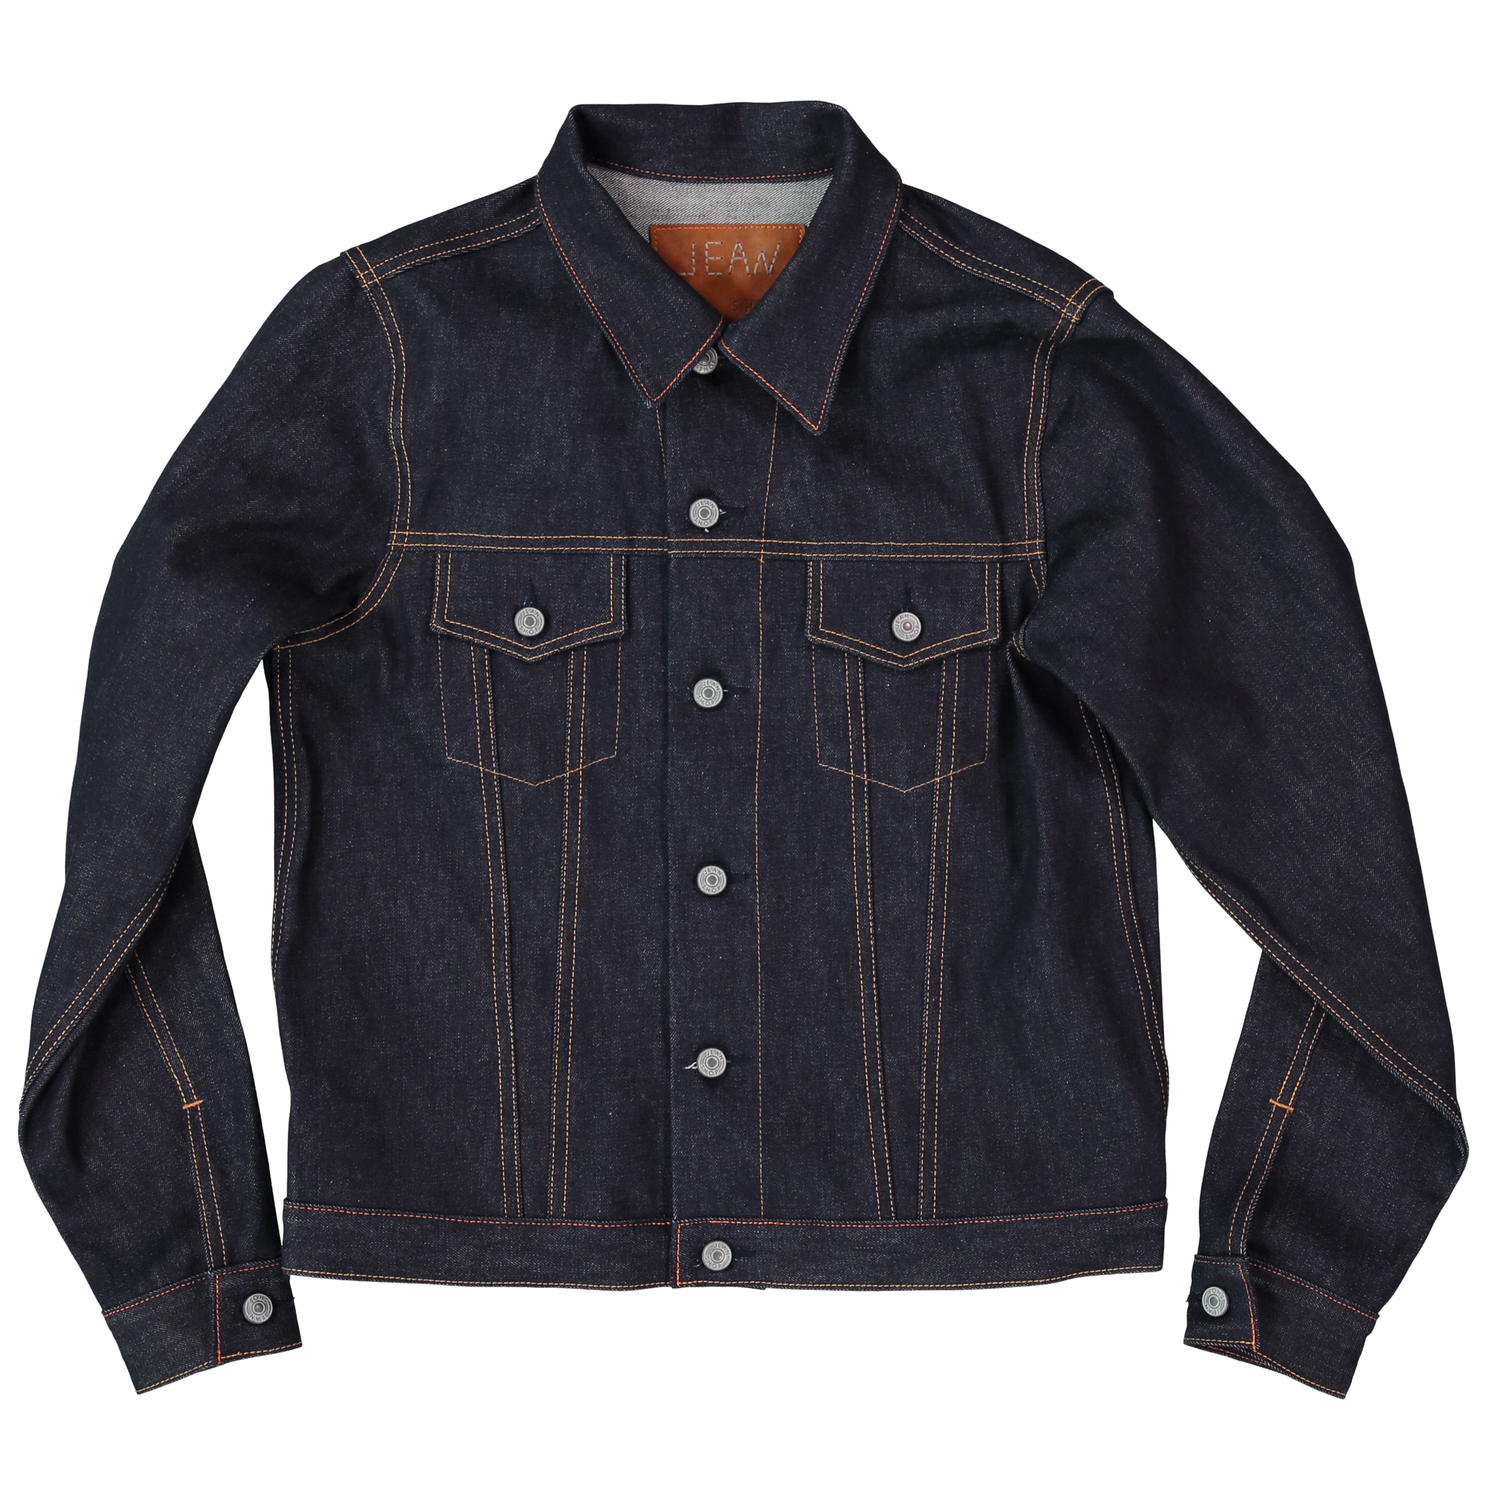 Men's Denim Jacket 13.75oz American Indigo — Jean Shop New York City